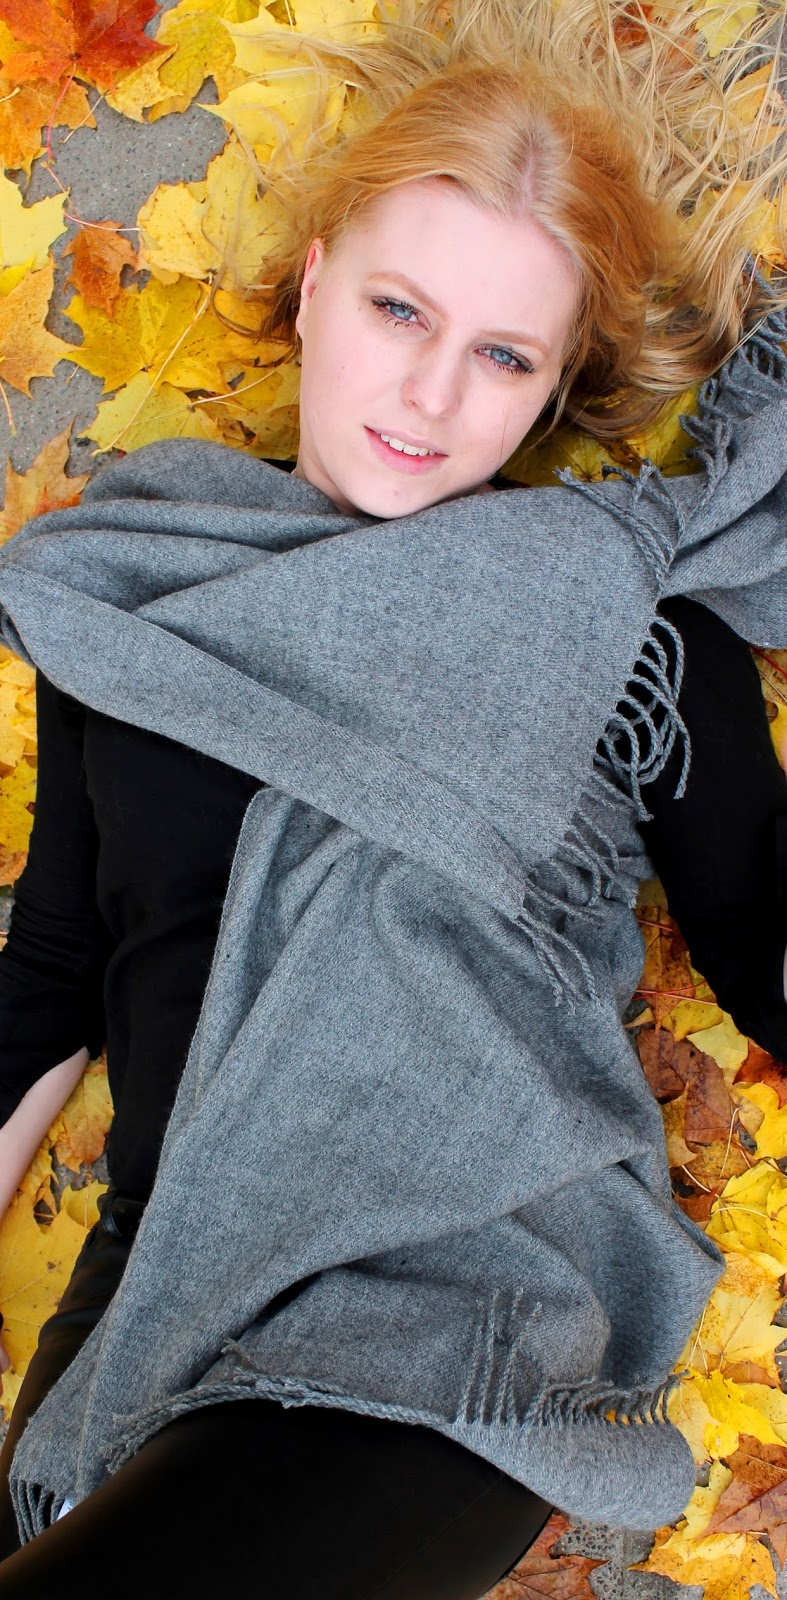 leaves, autumn, fall, hair, beauty, ad astra, astra, pieces, huivi, scarf, leaf, sexy, eyes, beautiful, girl, women, fashion, preppy, stylish, style